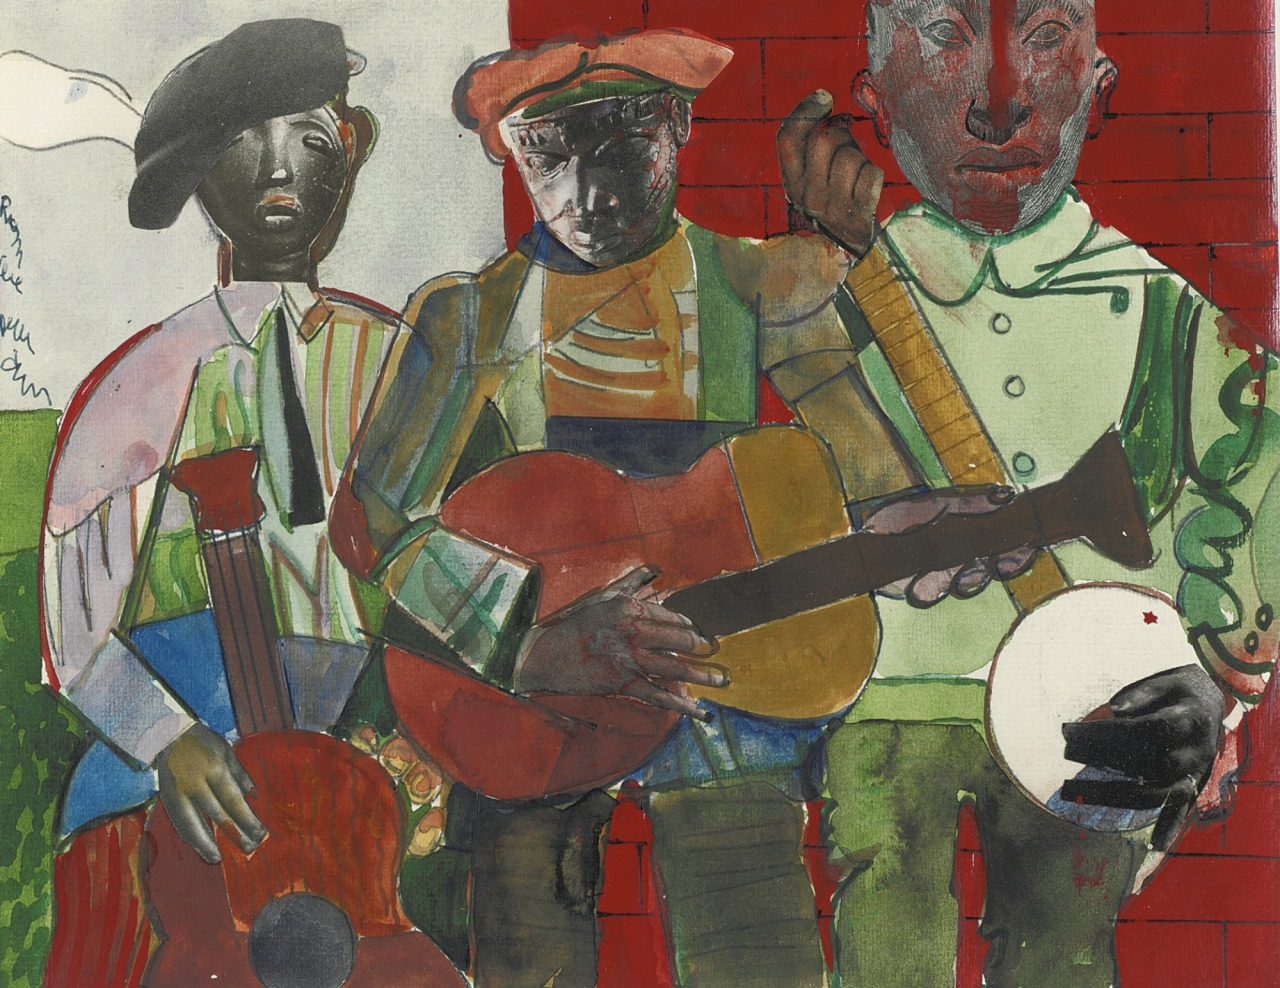 thunderstruck9:  Romare Bearden (American, 1911-1988), Country Musicians, c.1972. Gouache, ink and paper collage on paper, 21.6 x 27.3 cm.